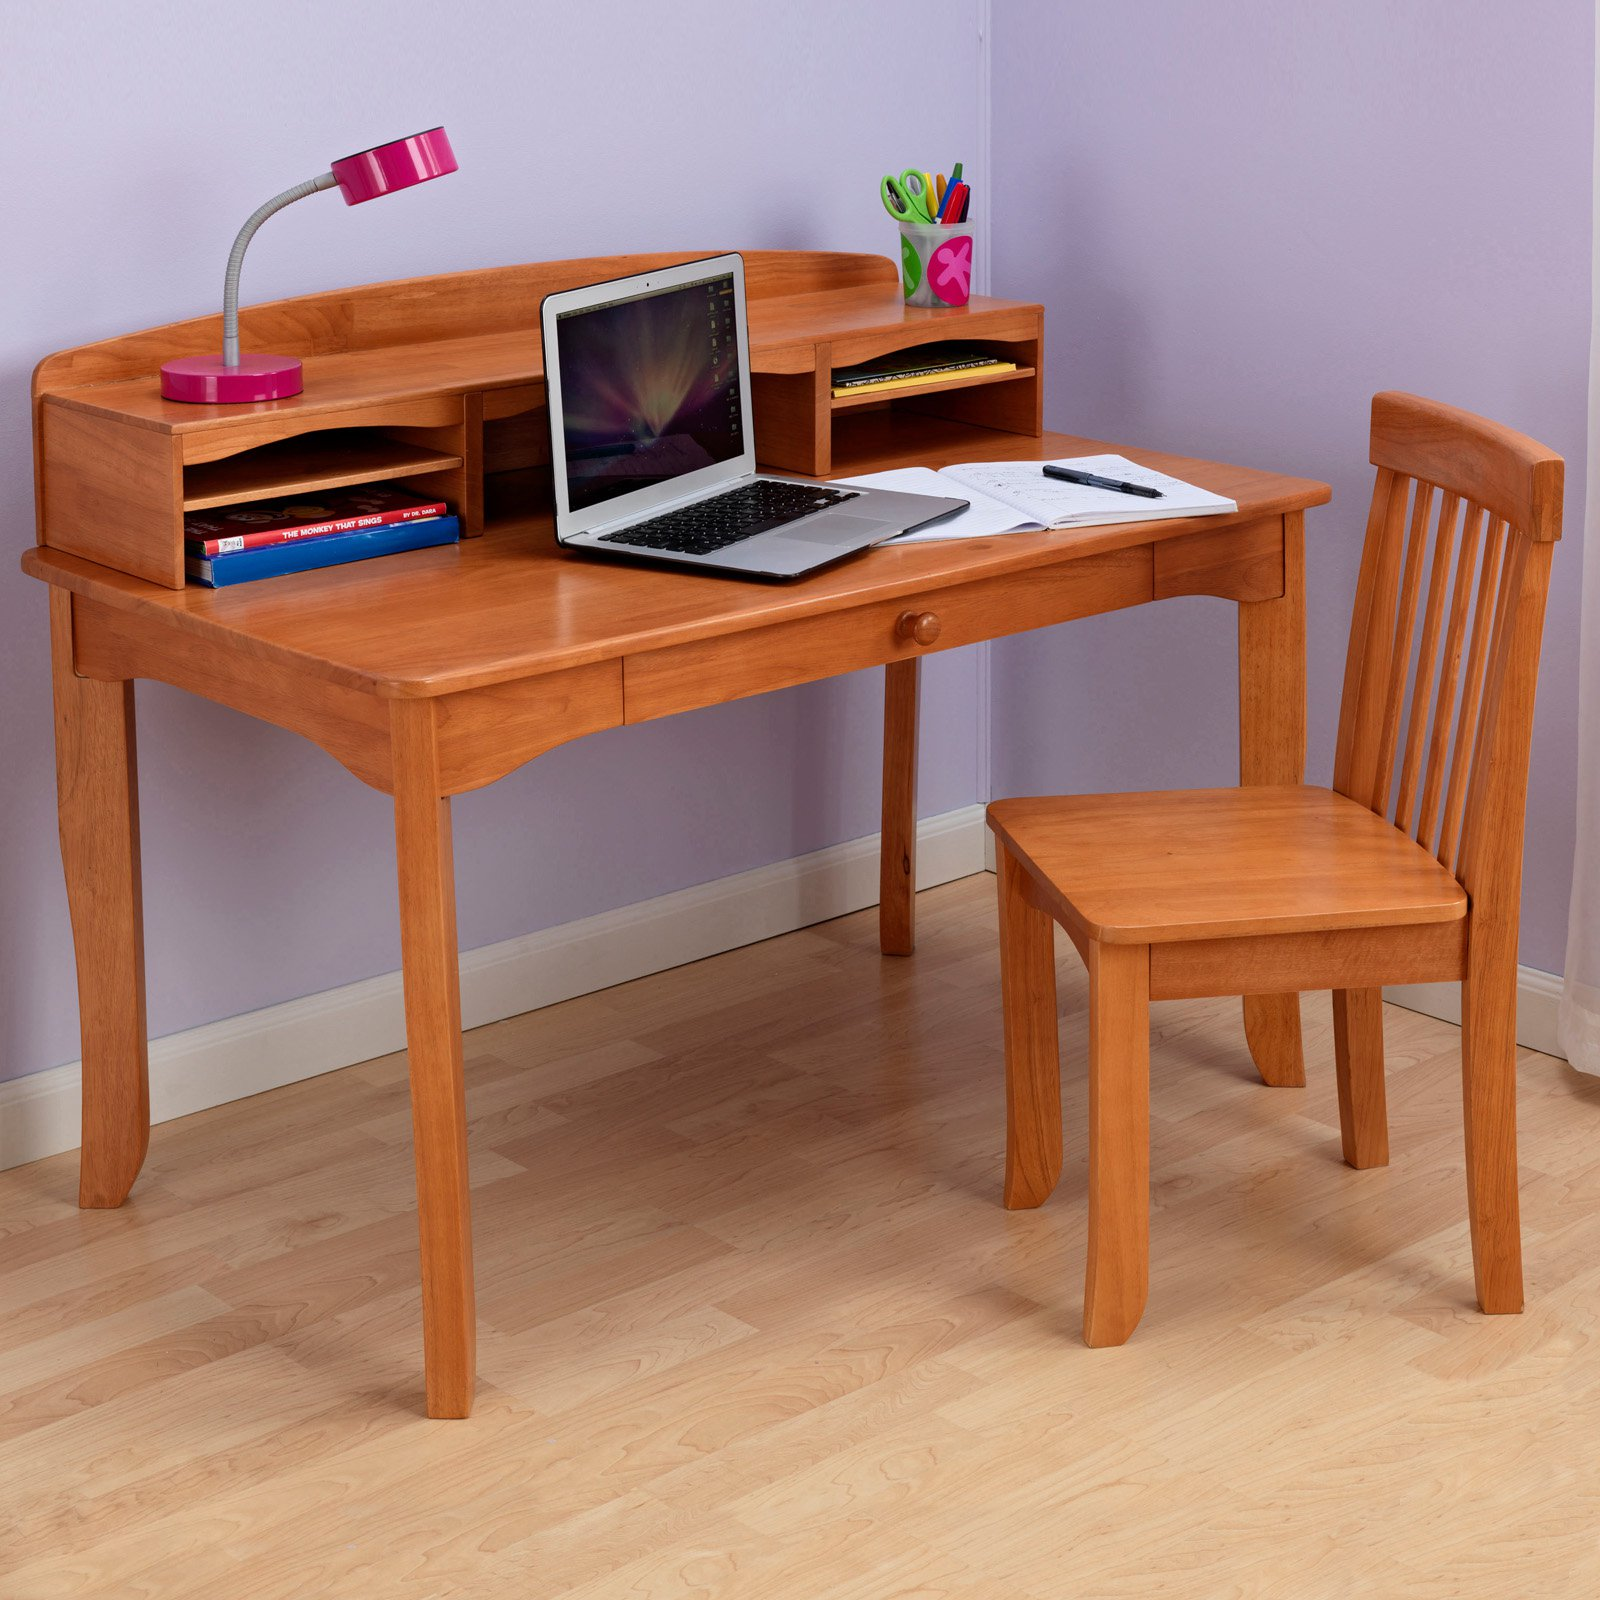 KidKraft Avalon Desk with Hutch Walmart